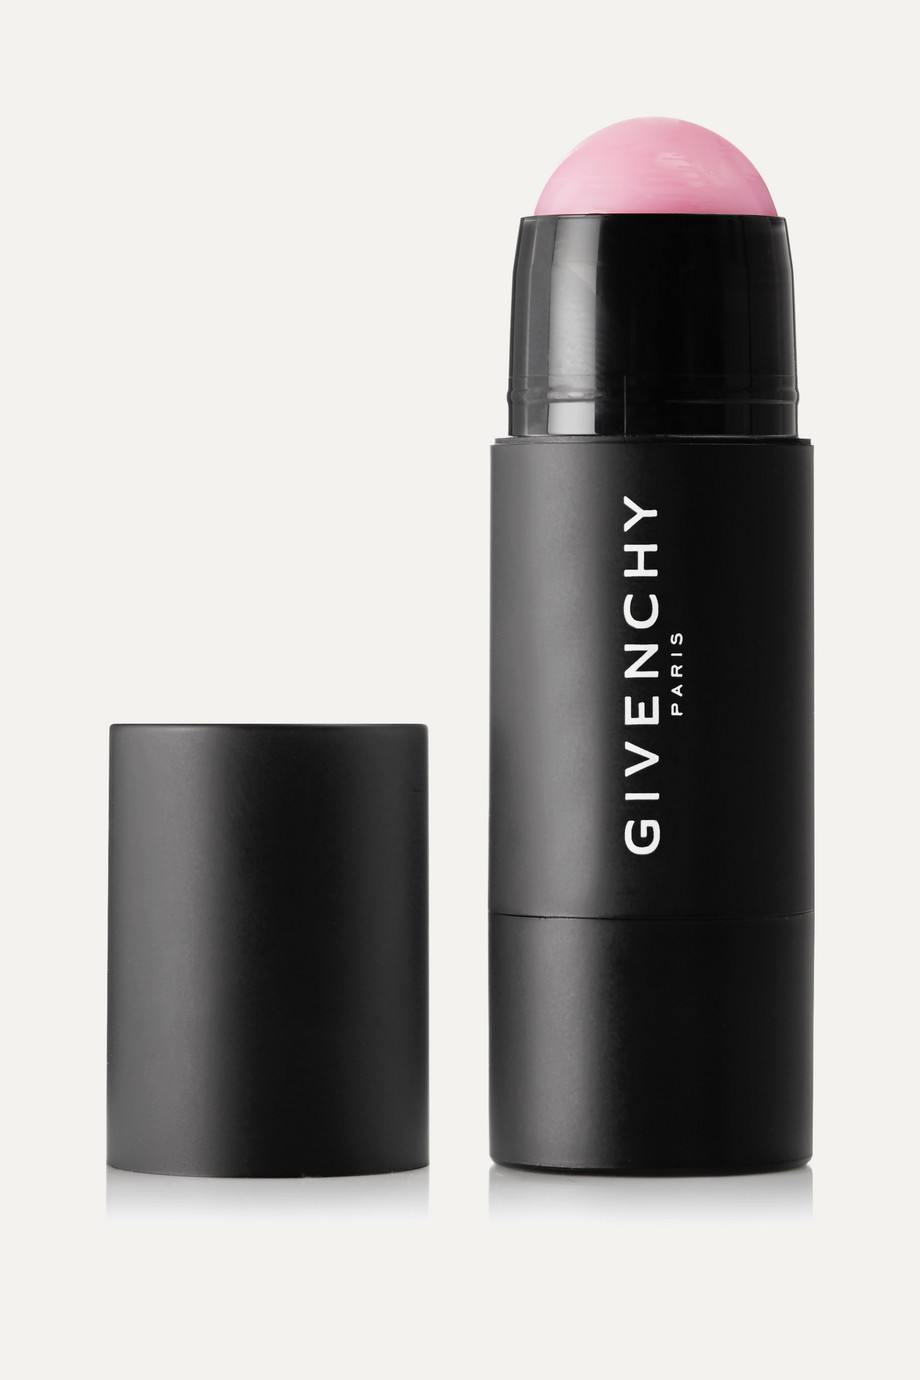 Givenchy Beauty Mat & Blur Touch